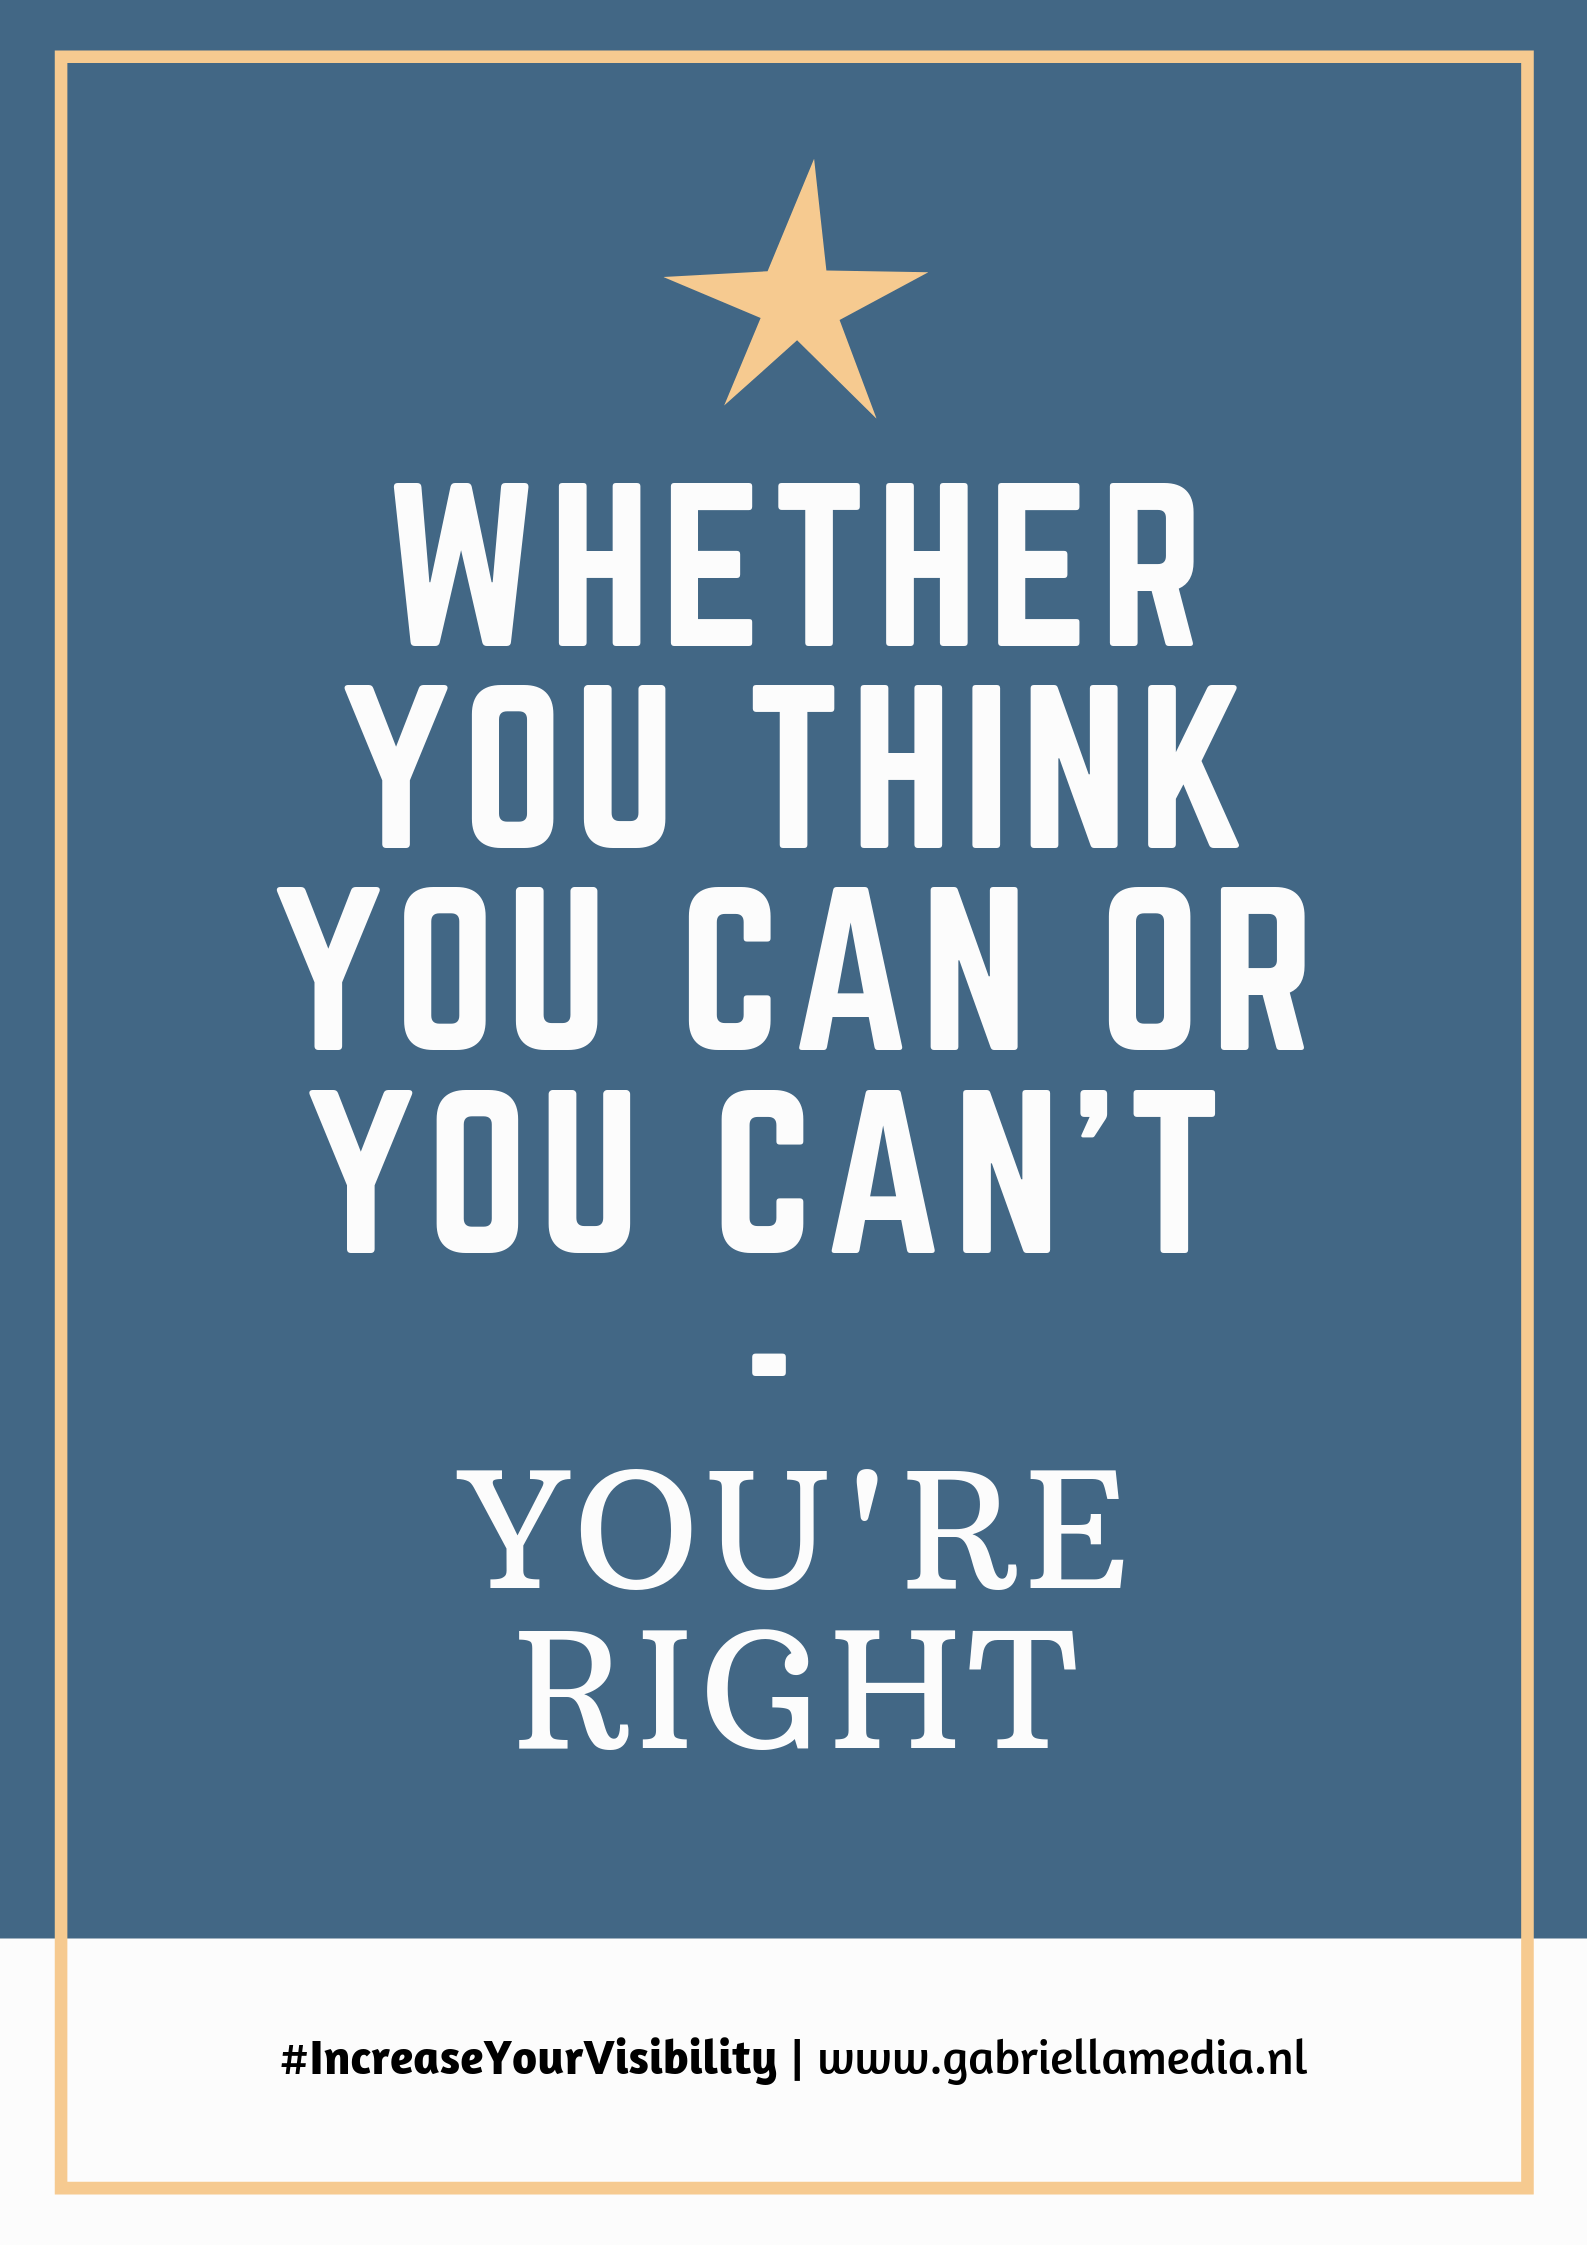 #02/2019 - Printable | Whether you think you can or you can't you're right